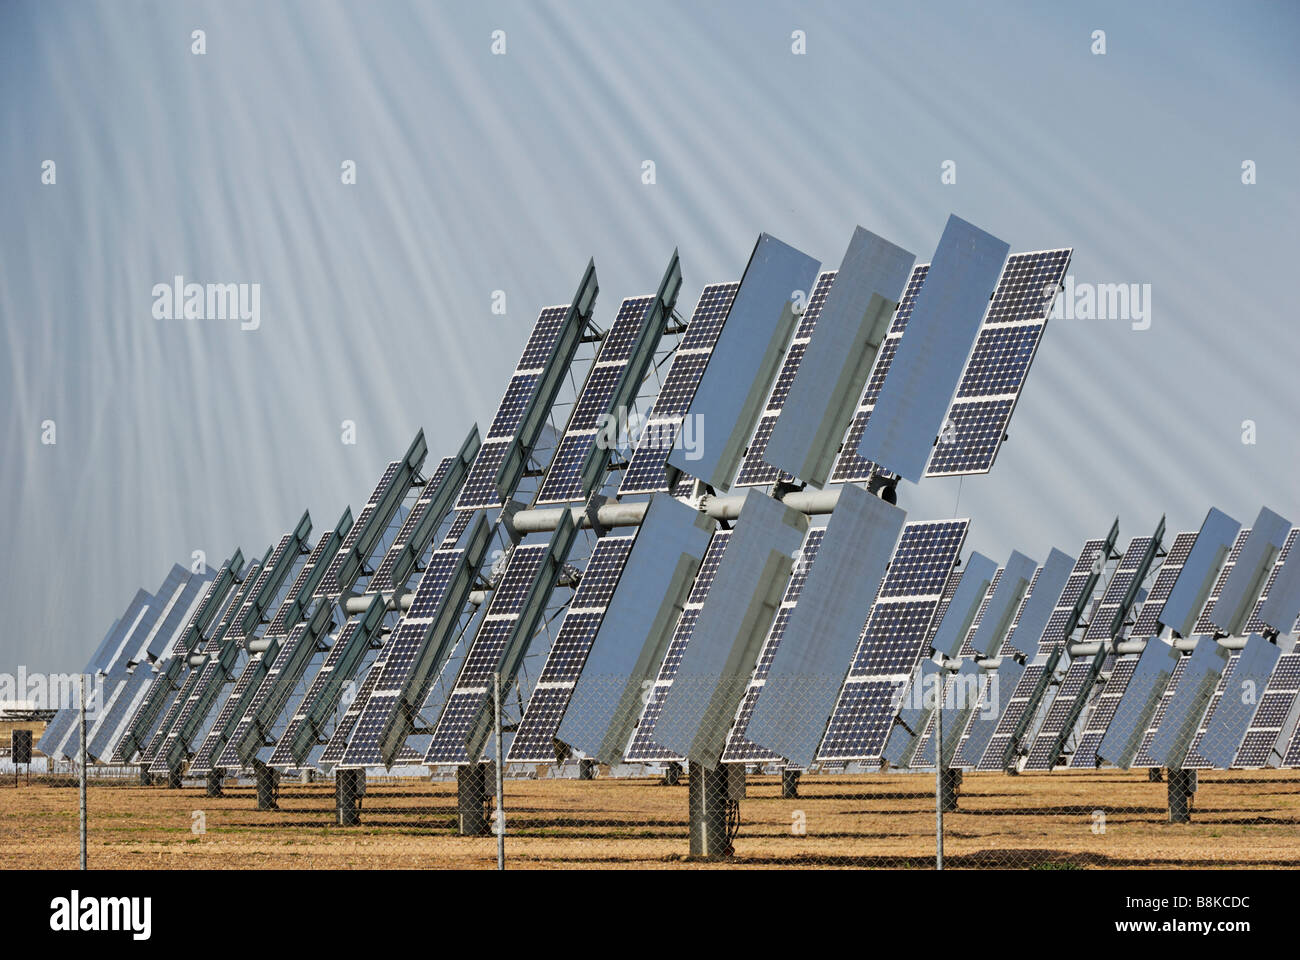 Solúcar power plant photovoltaic PV concentration tracker units which produce clean from the sun Solúcar - Stock Image